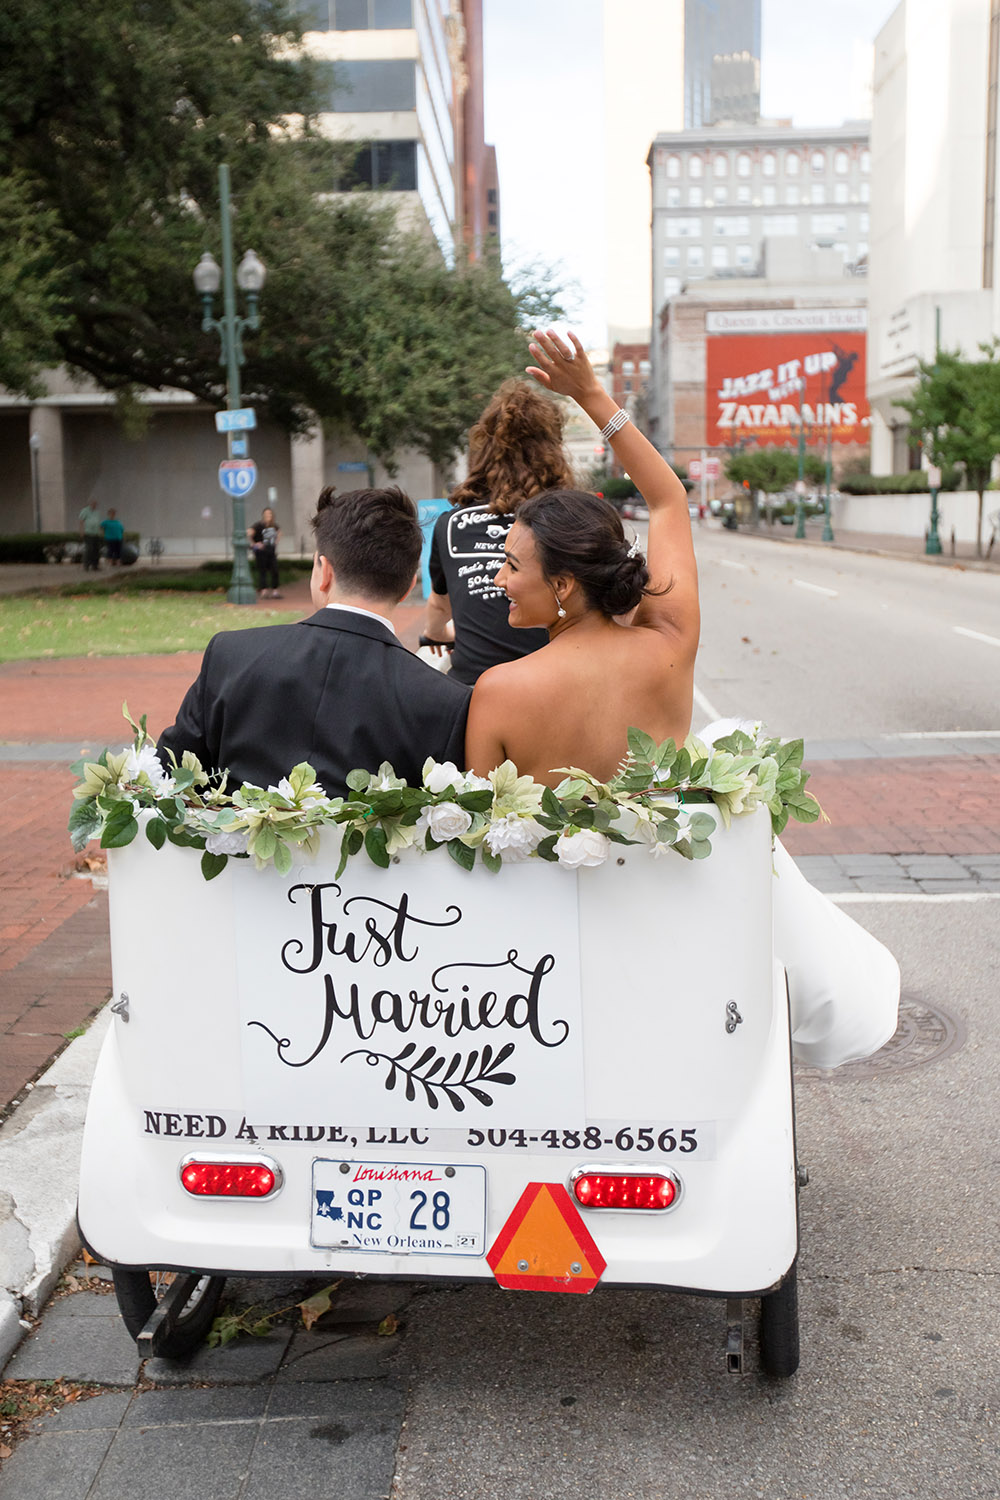 The bride and groom ride in a pedicab to their reception